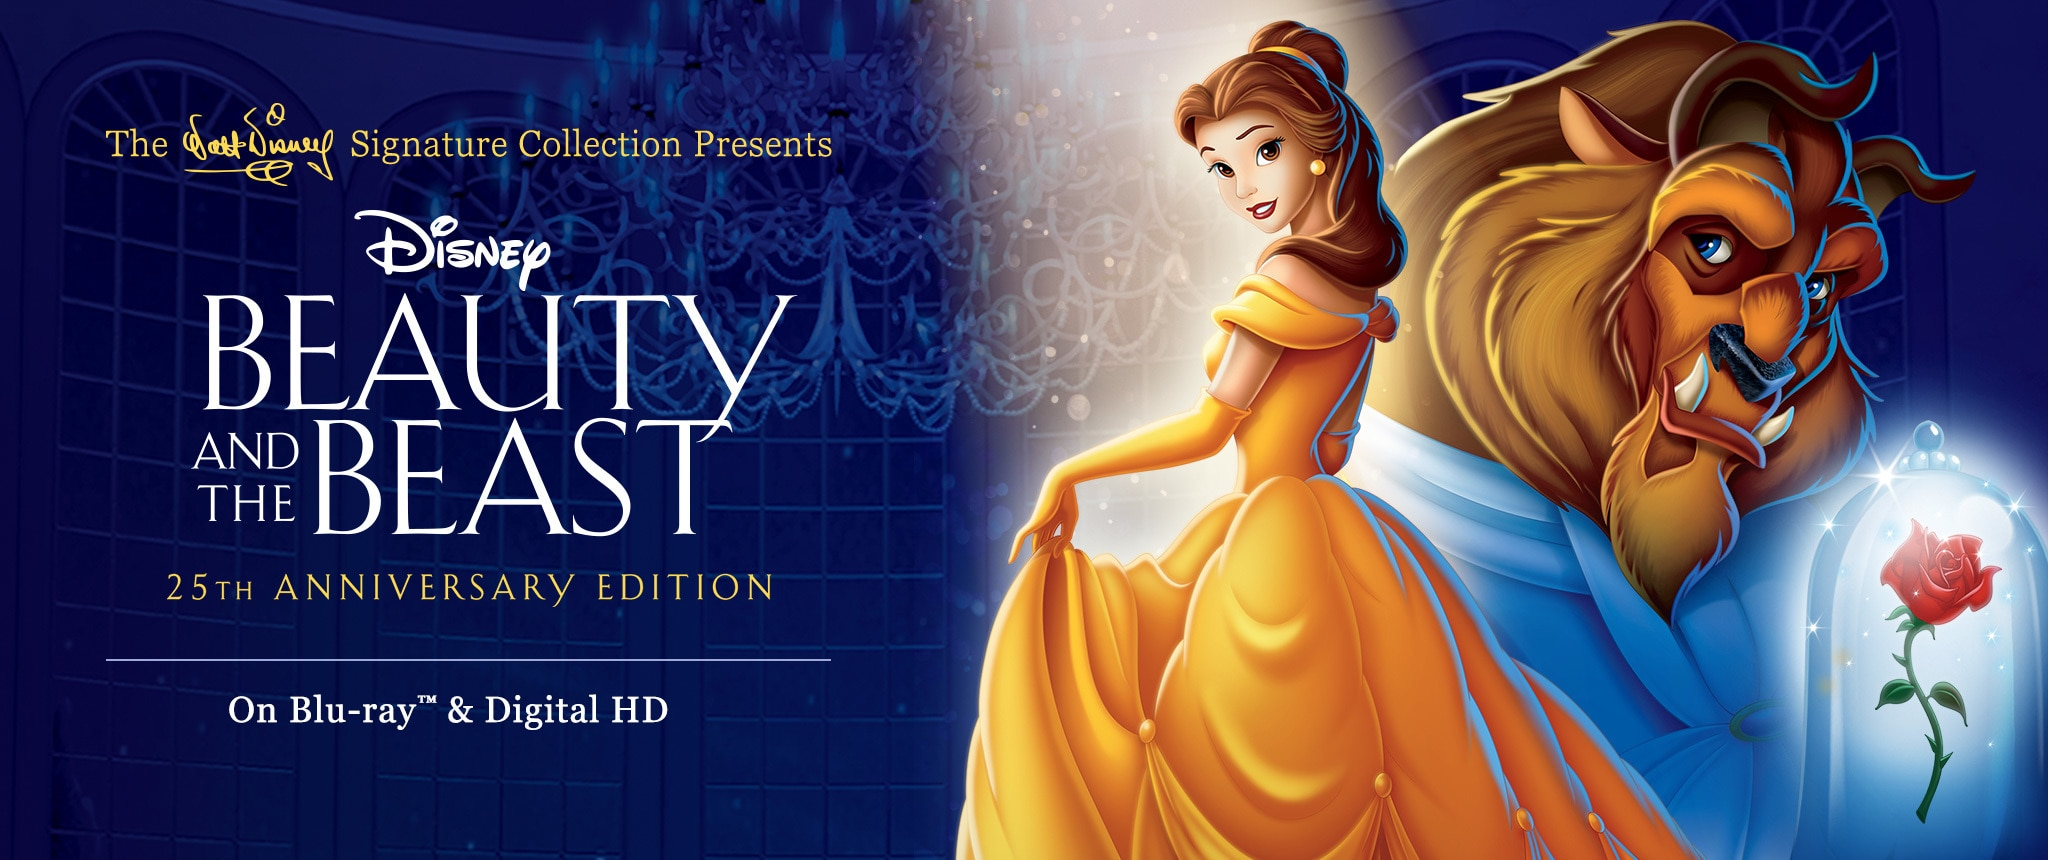 beauty and the beast 1991 download 1080p